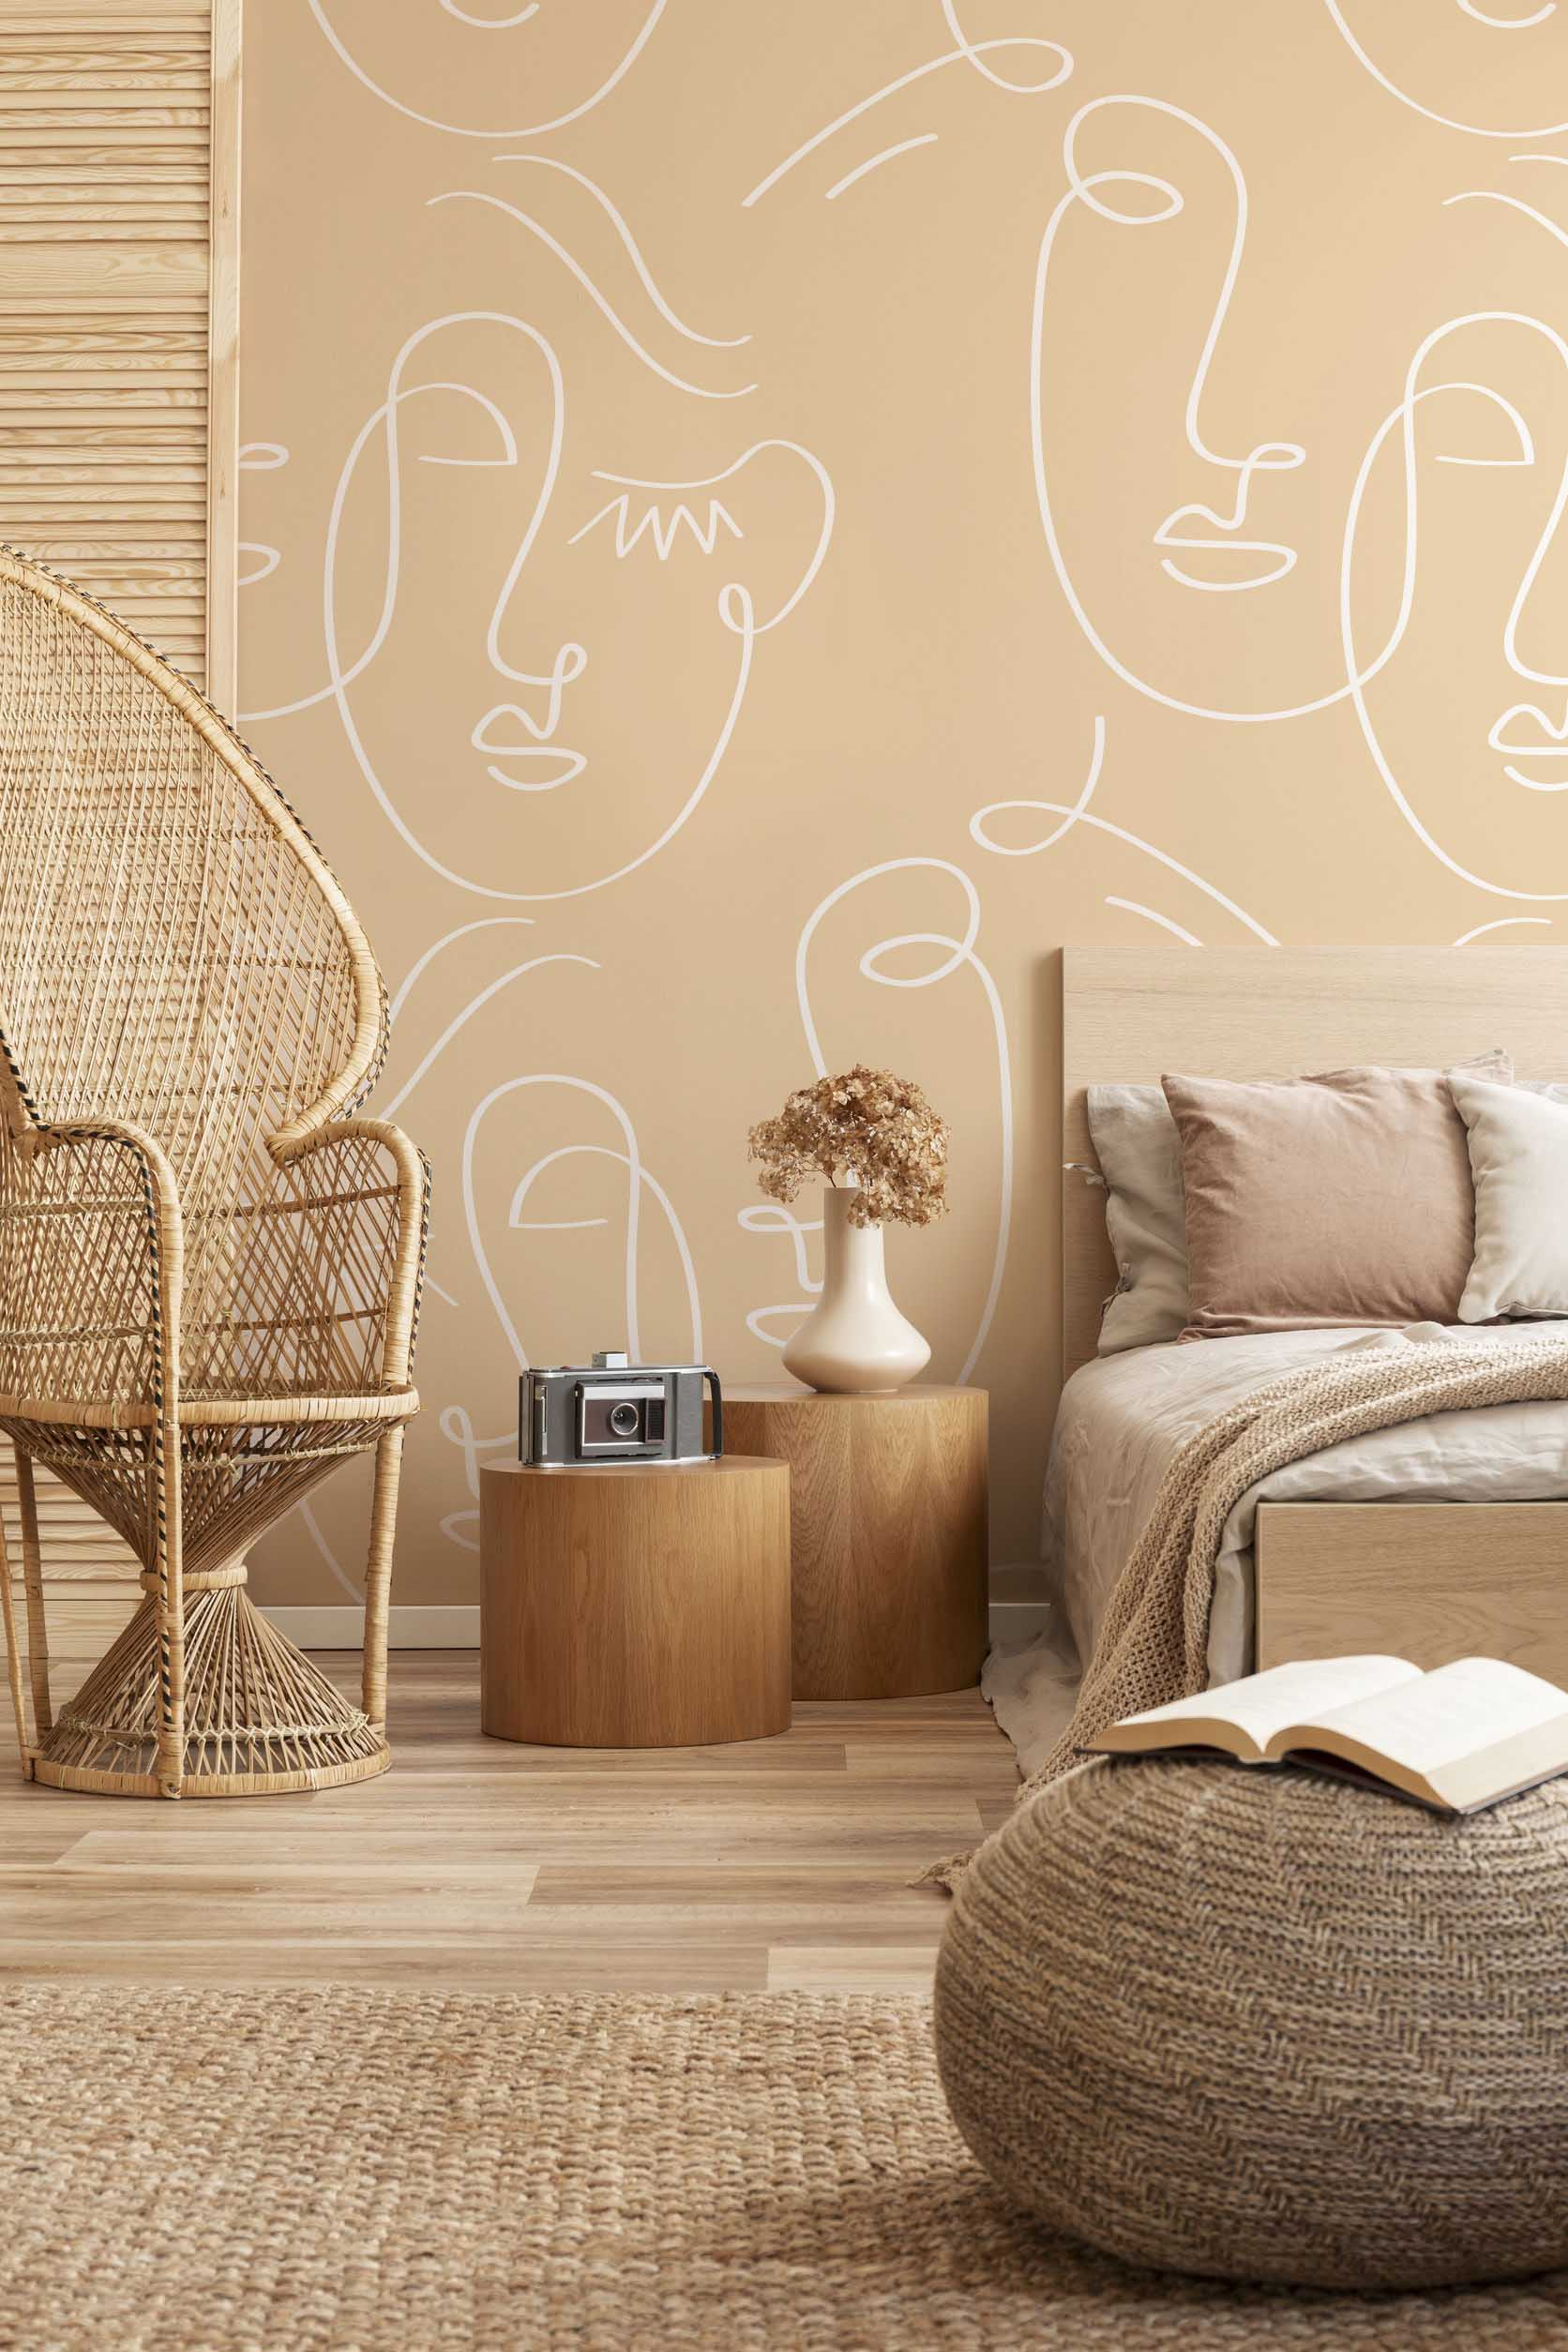 White Gold Abstract Twin Faces Wall Mural